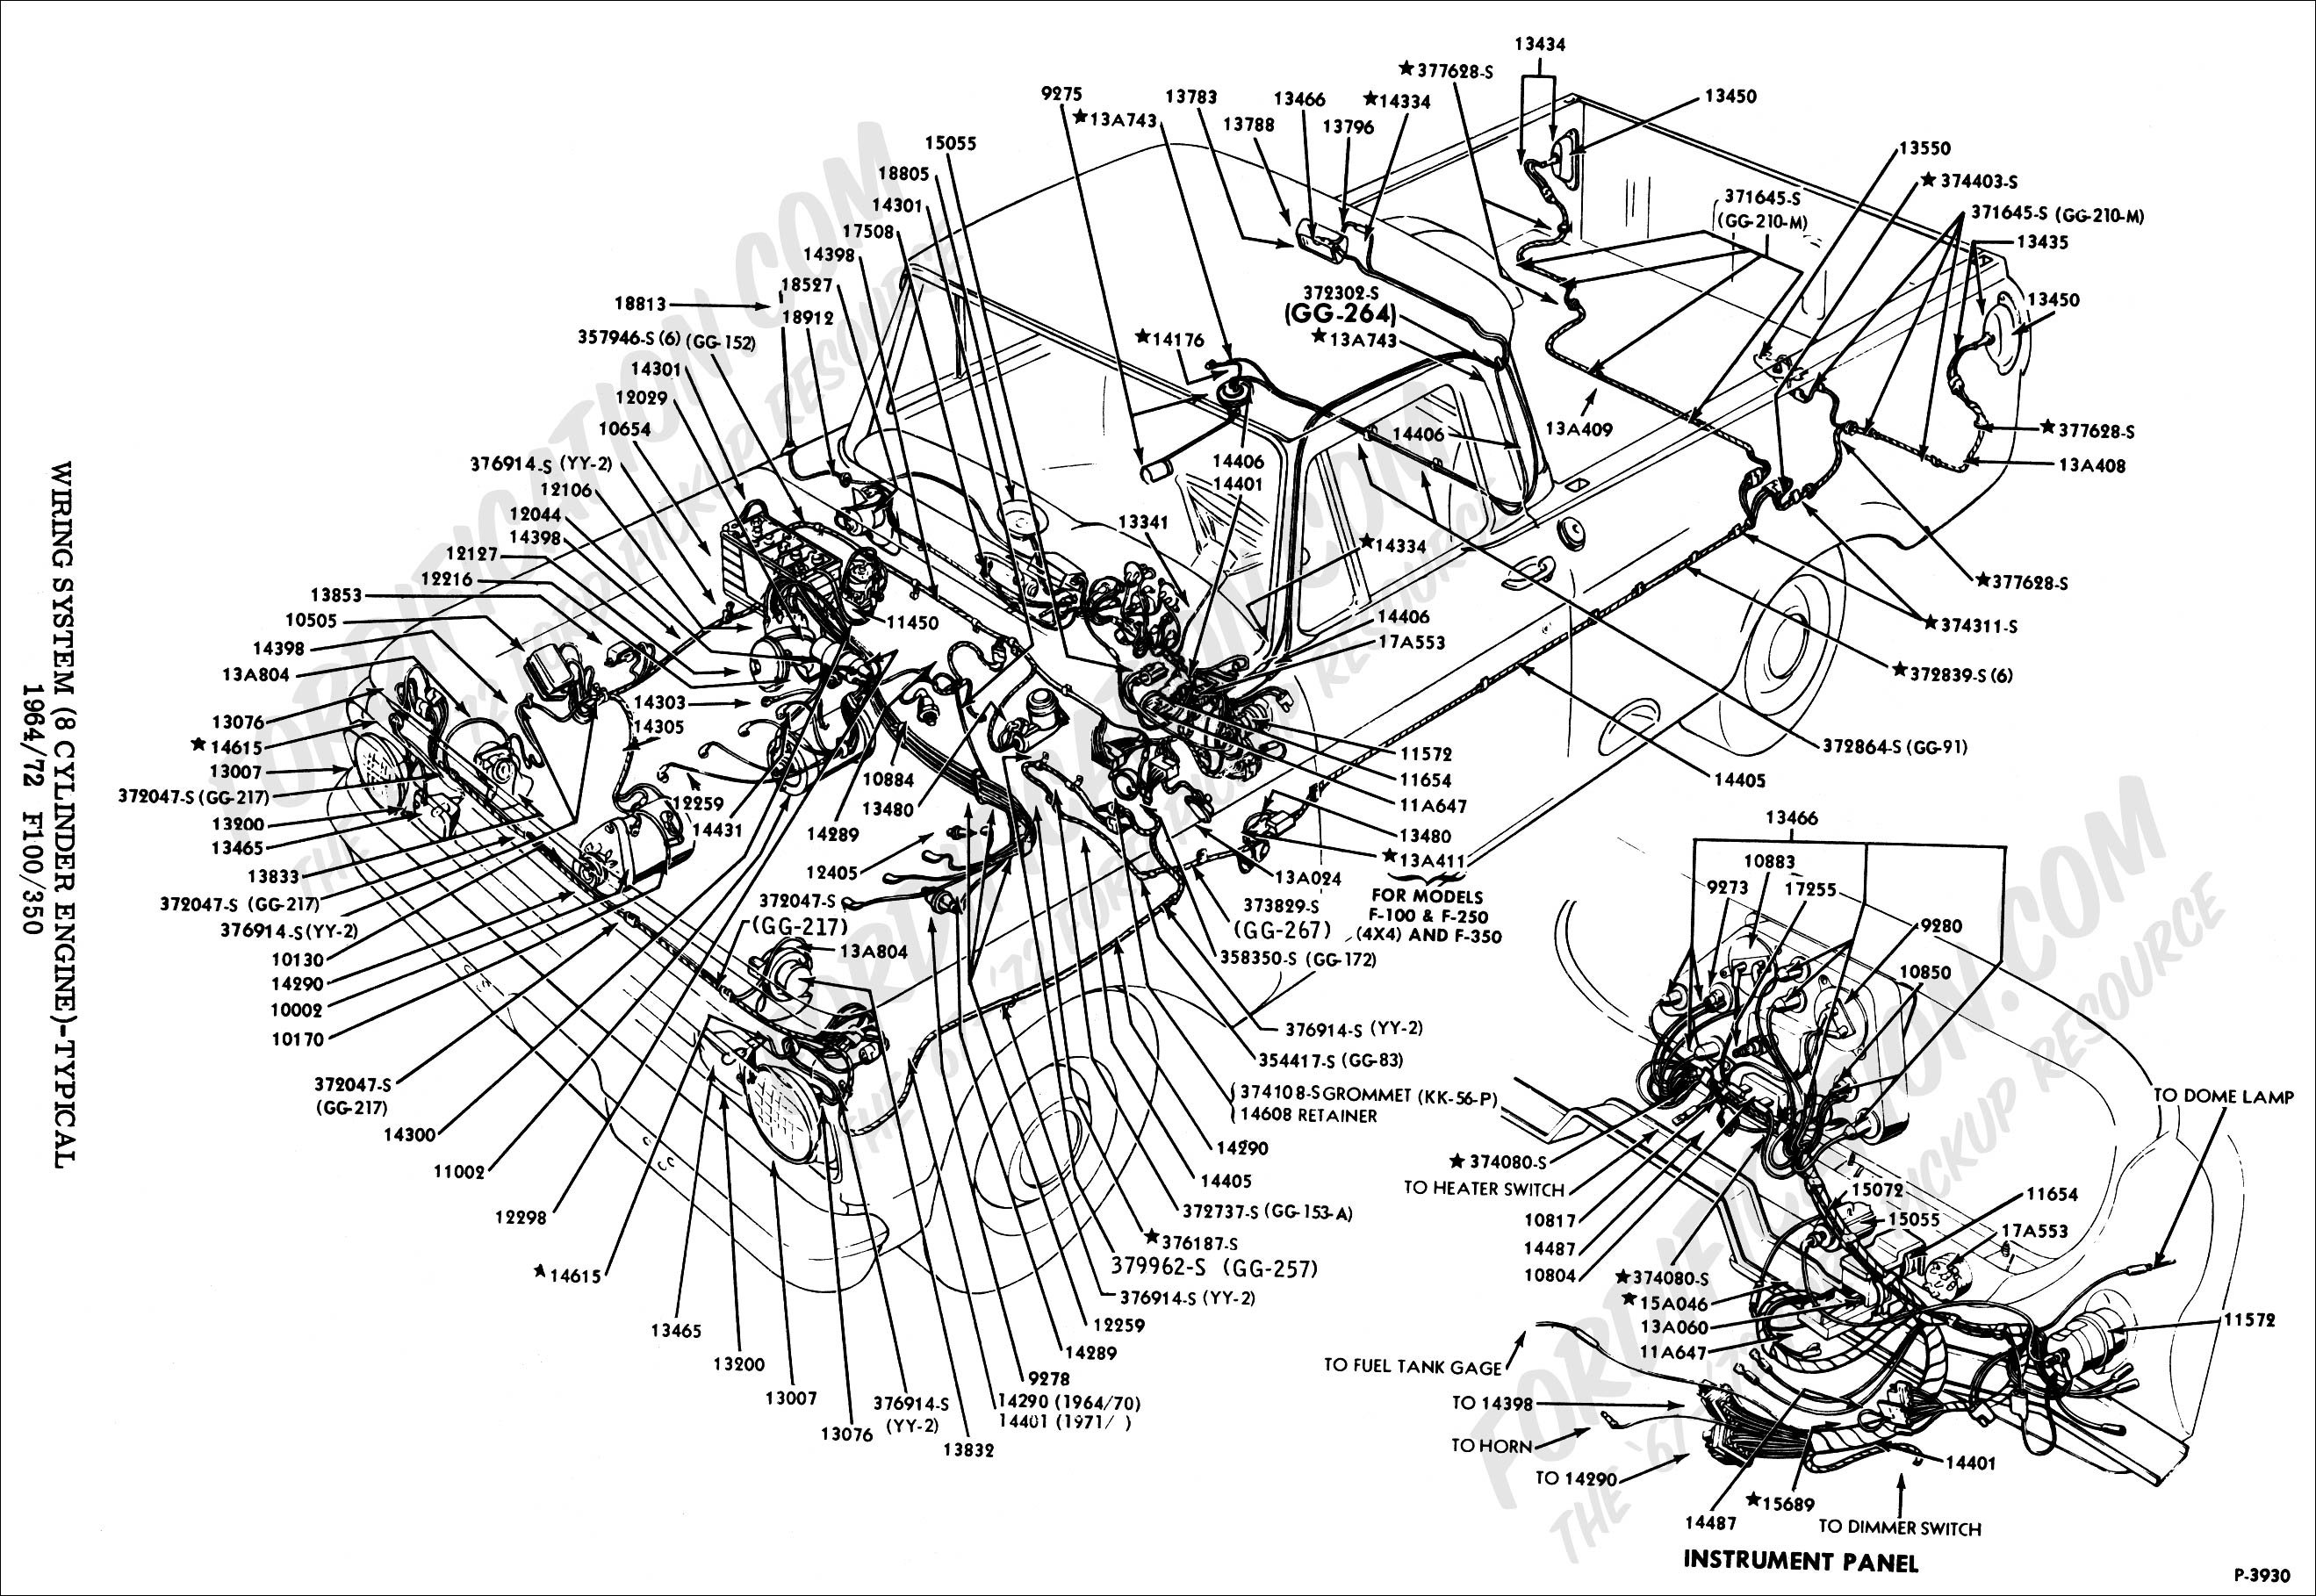 wiringsystem_HI free ford wiring diagrams 1998 ford mustang wiring diagrams 1969 mustang wiring diagram online at gsmx.co